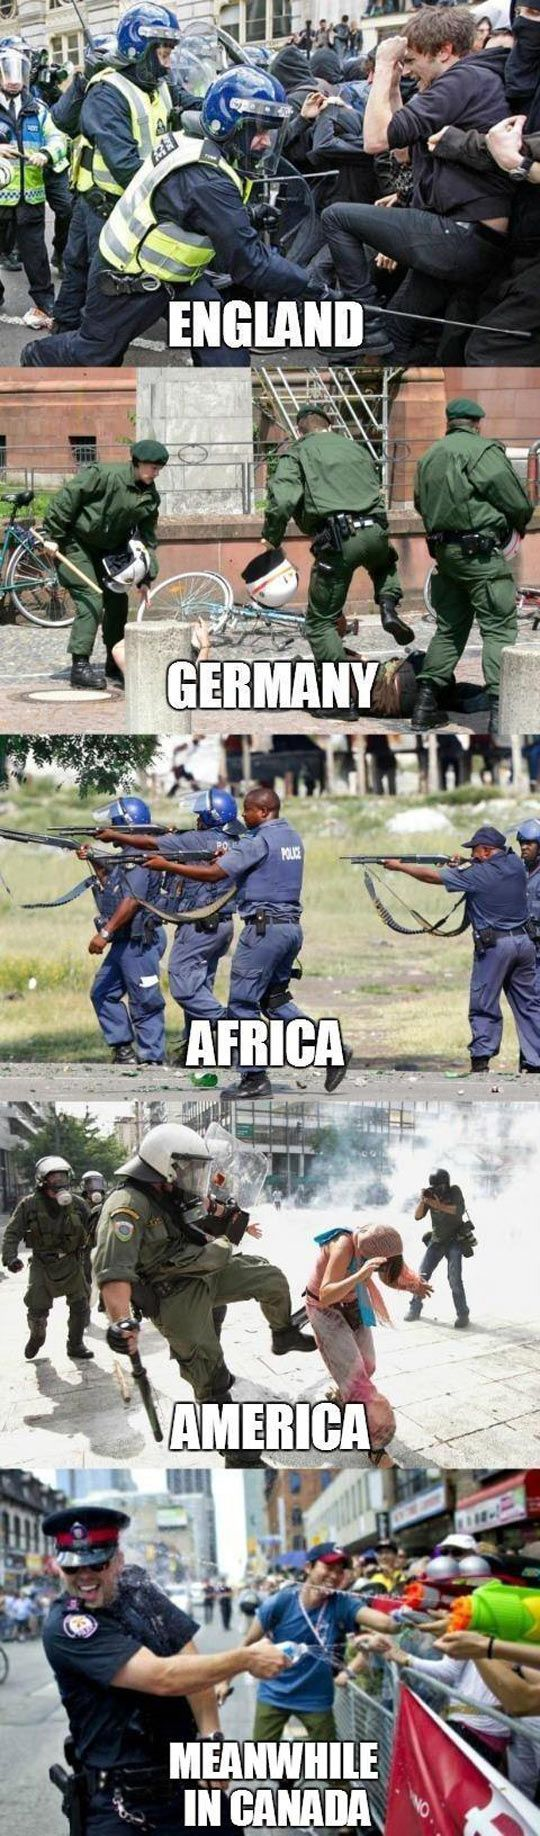 Police brutality across the world…